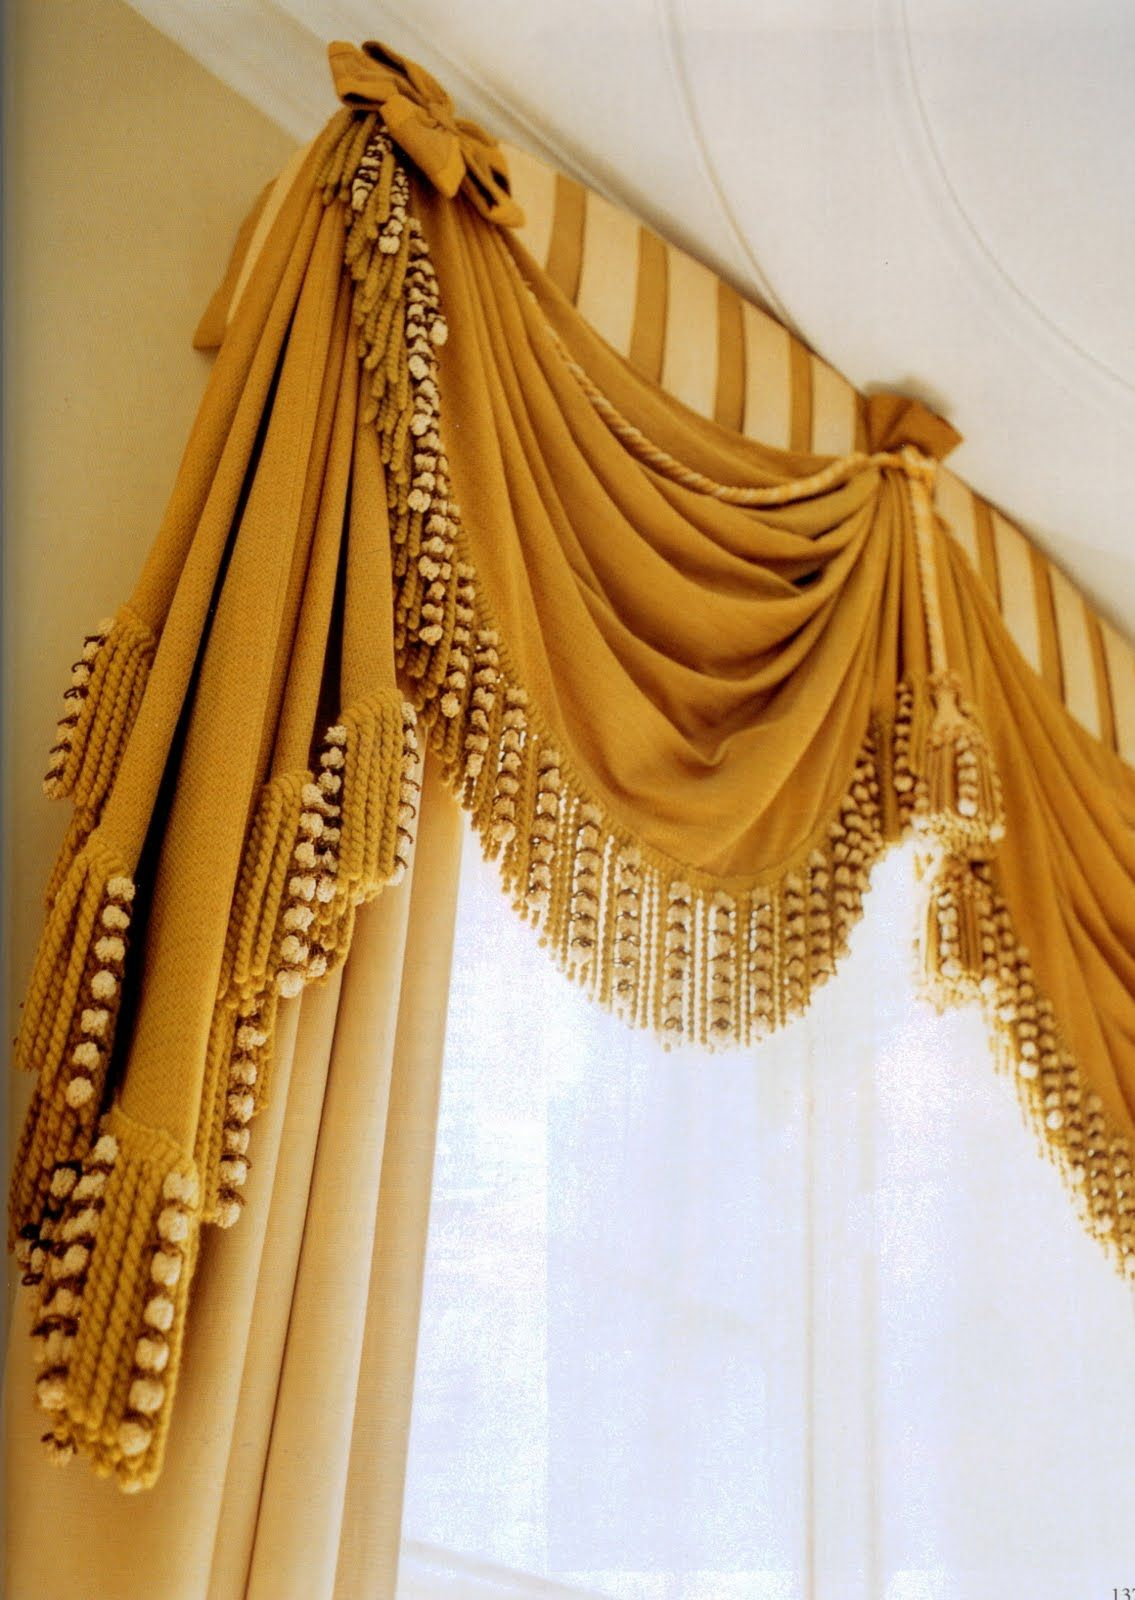 close up of the heavy wool curtains-flawlessly made. John Fowler design at Cornbury Park.